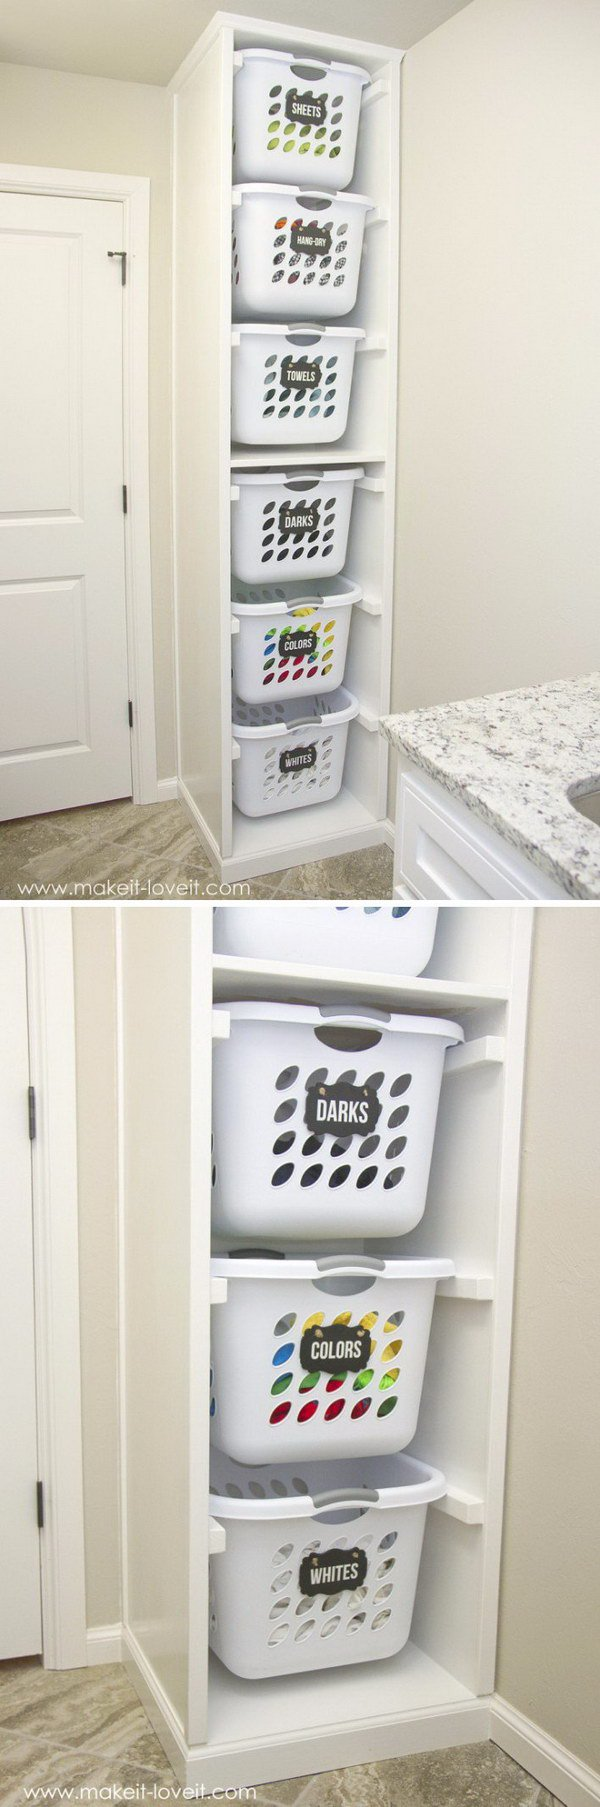 50 easy storage ideas for small spaces - Laundry basket ideas for small space ideas ...